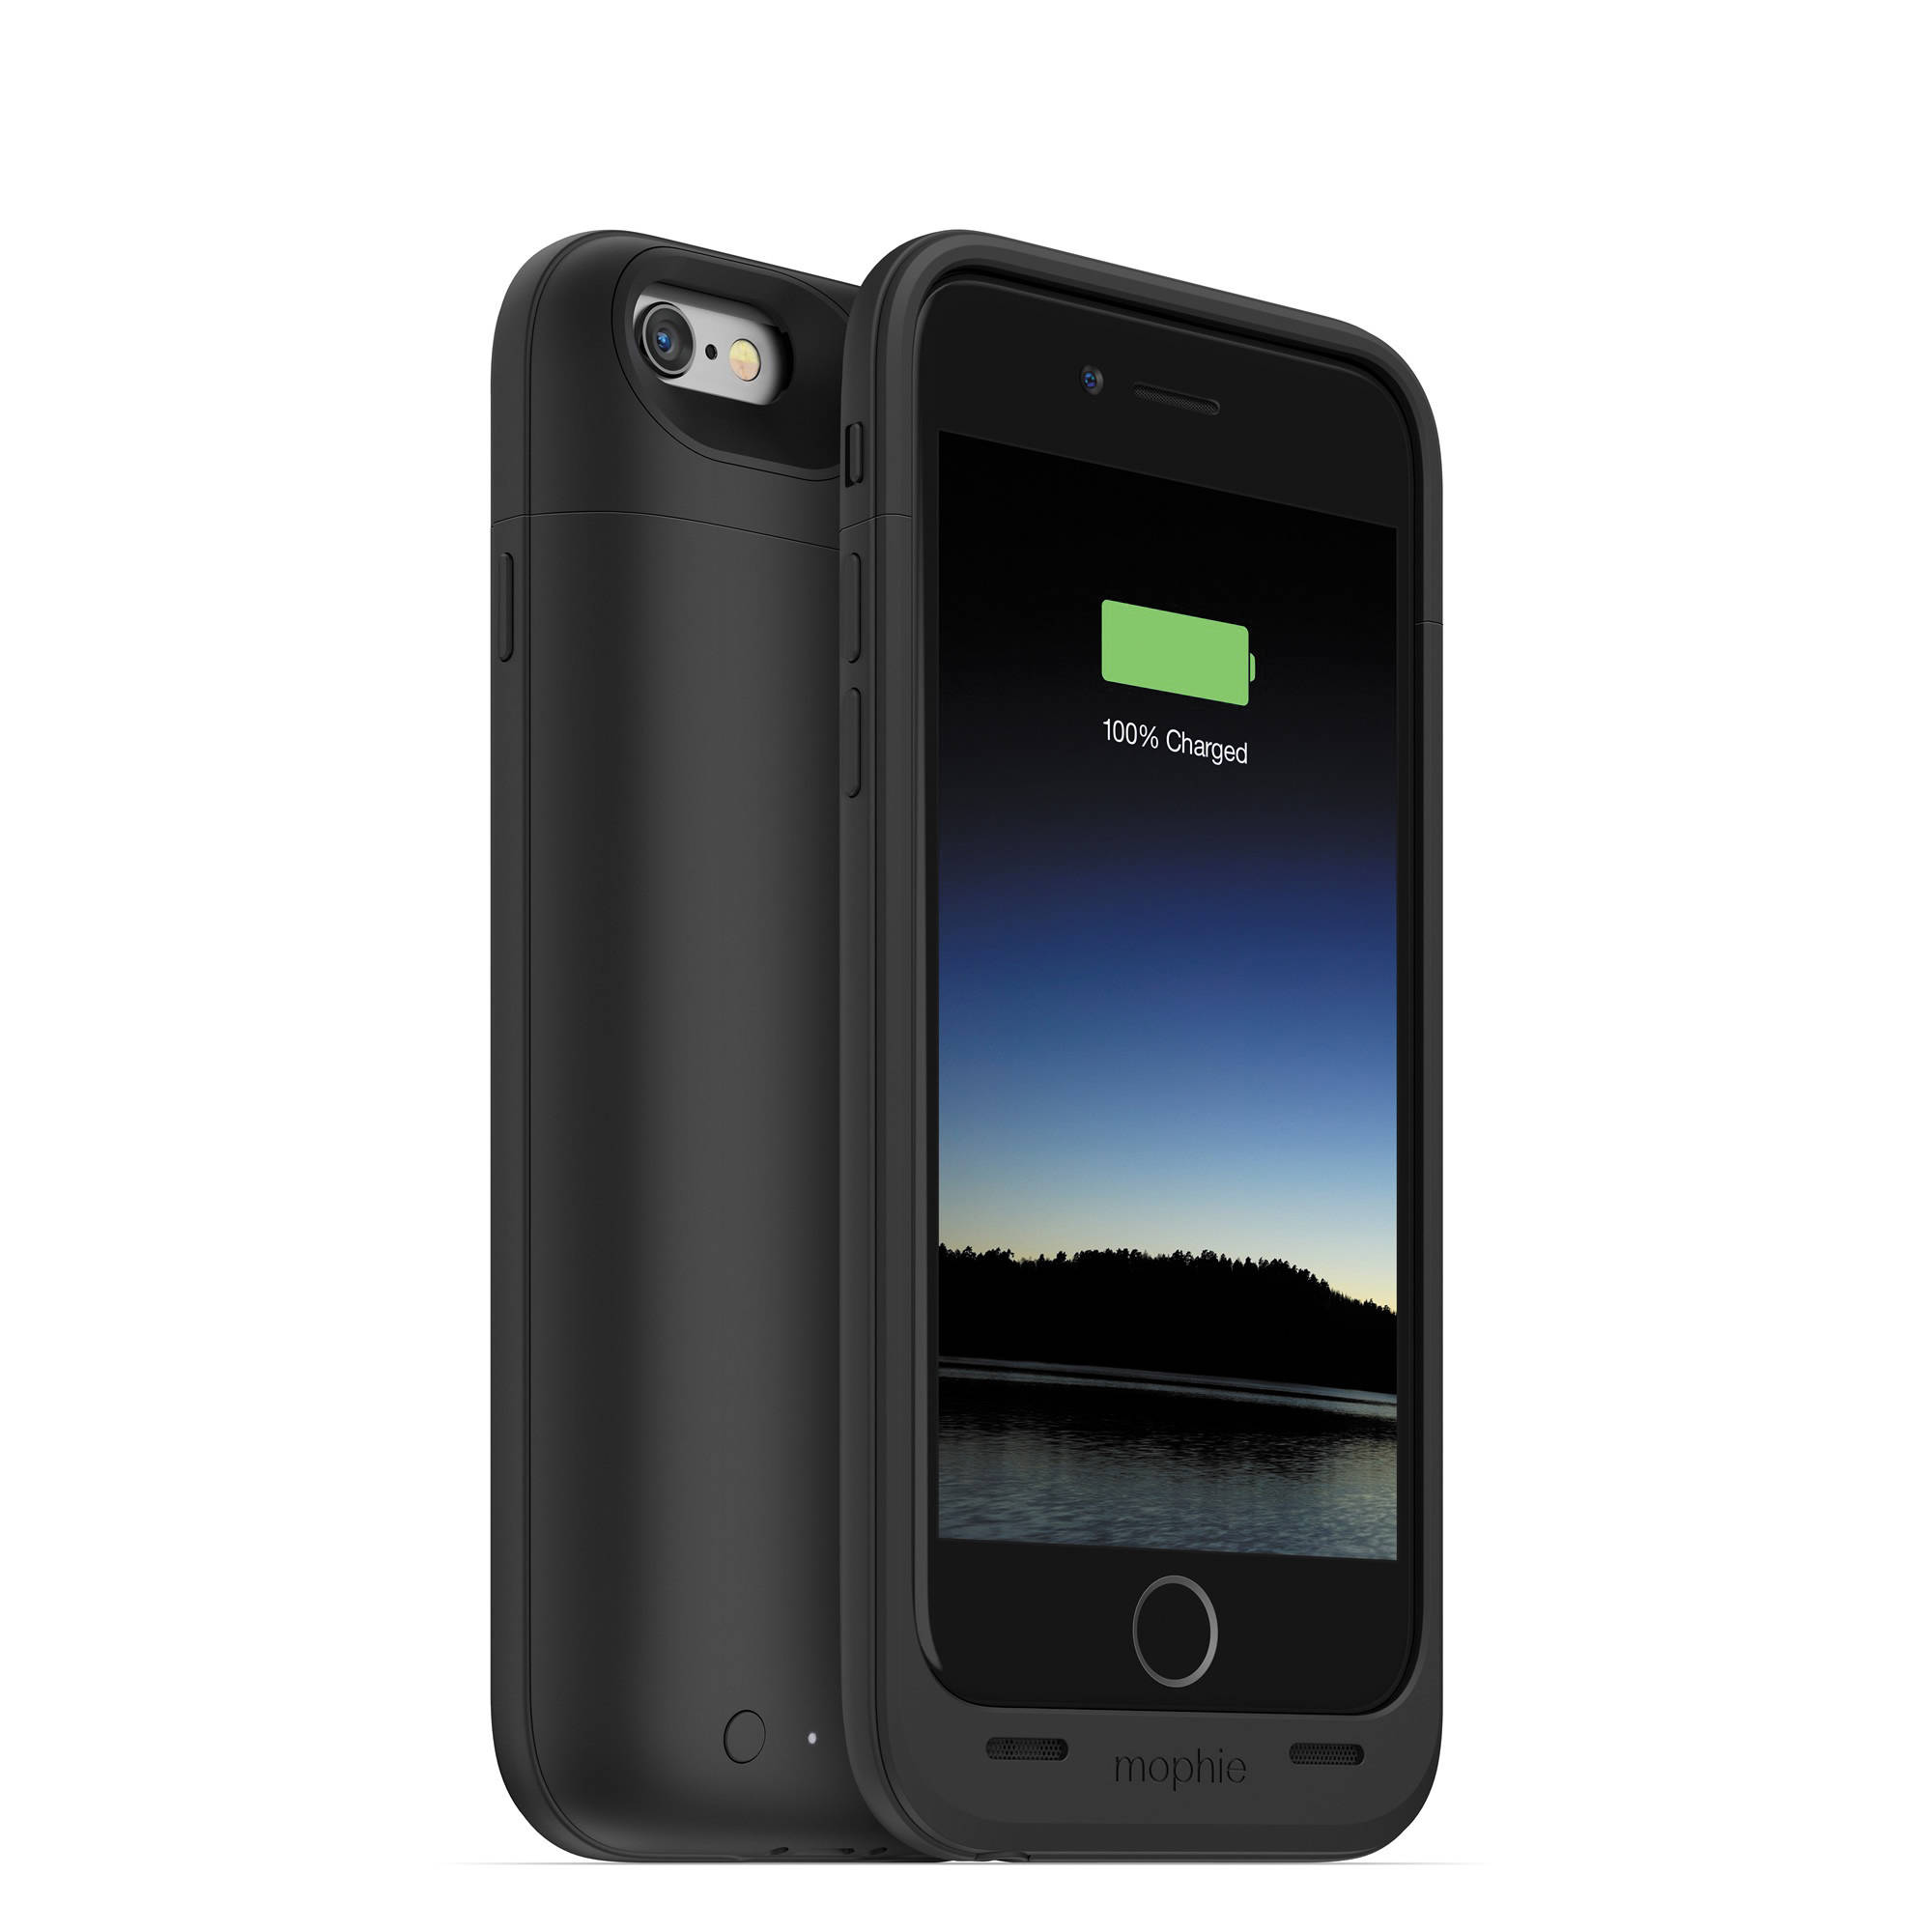 low priced 25d3e 14859 mophie juice pack air for iPhone 6/6s (Black)